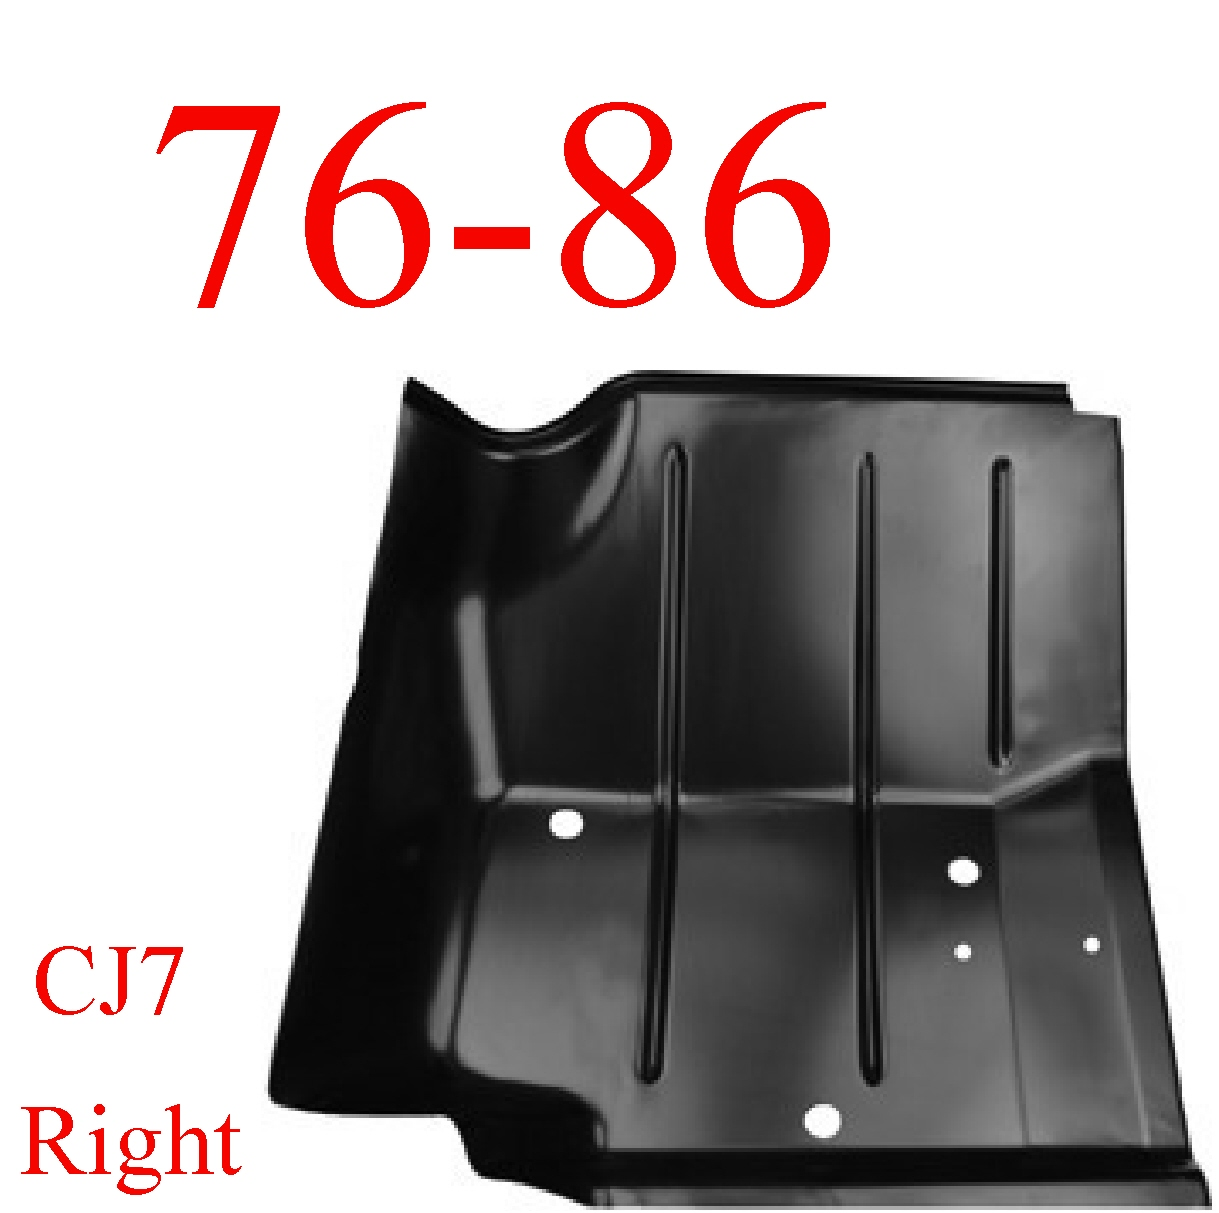 76-86 Jeep CJ7 Right Front Floor Pan